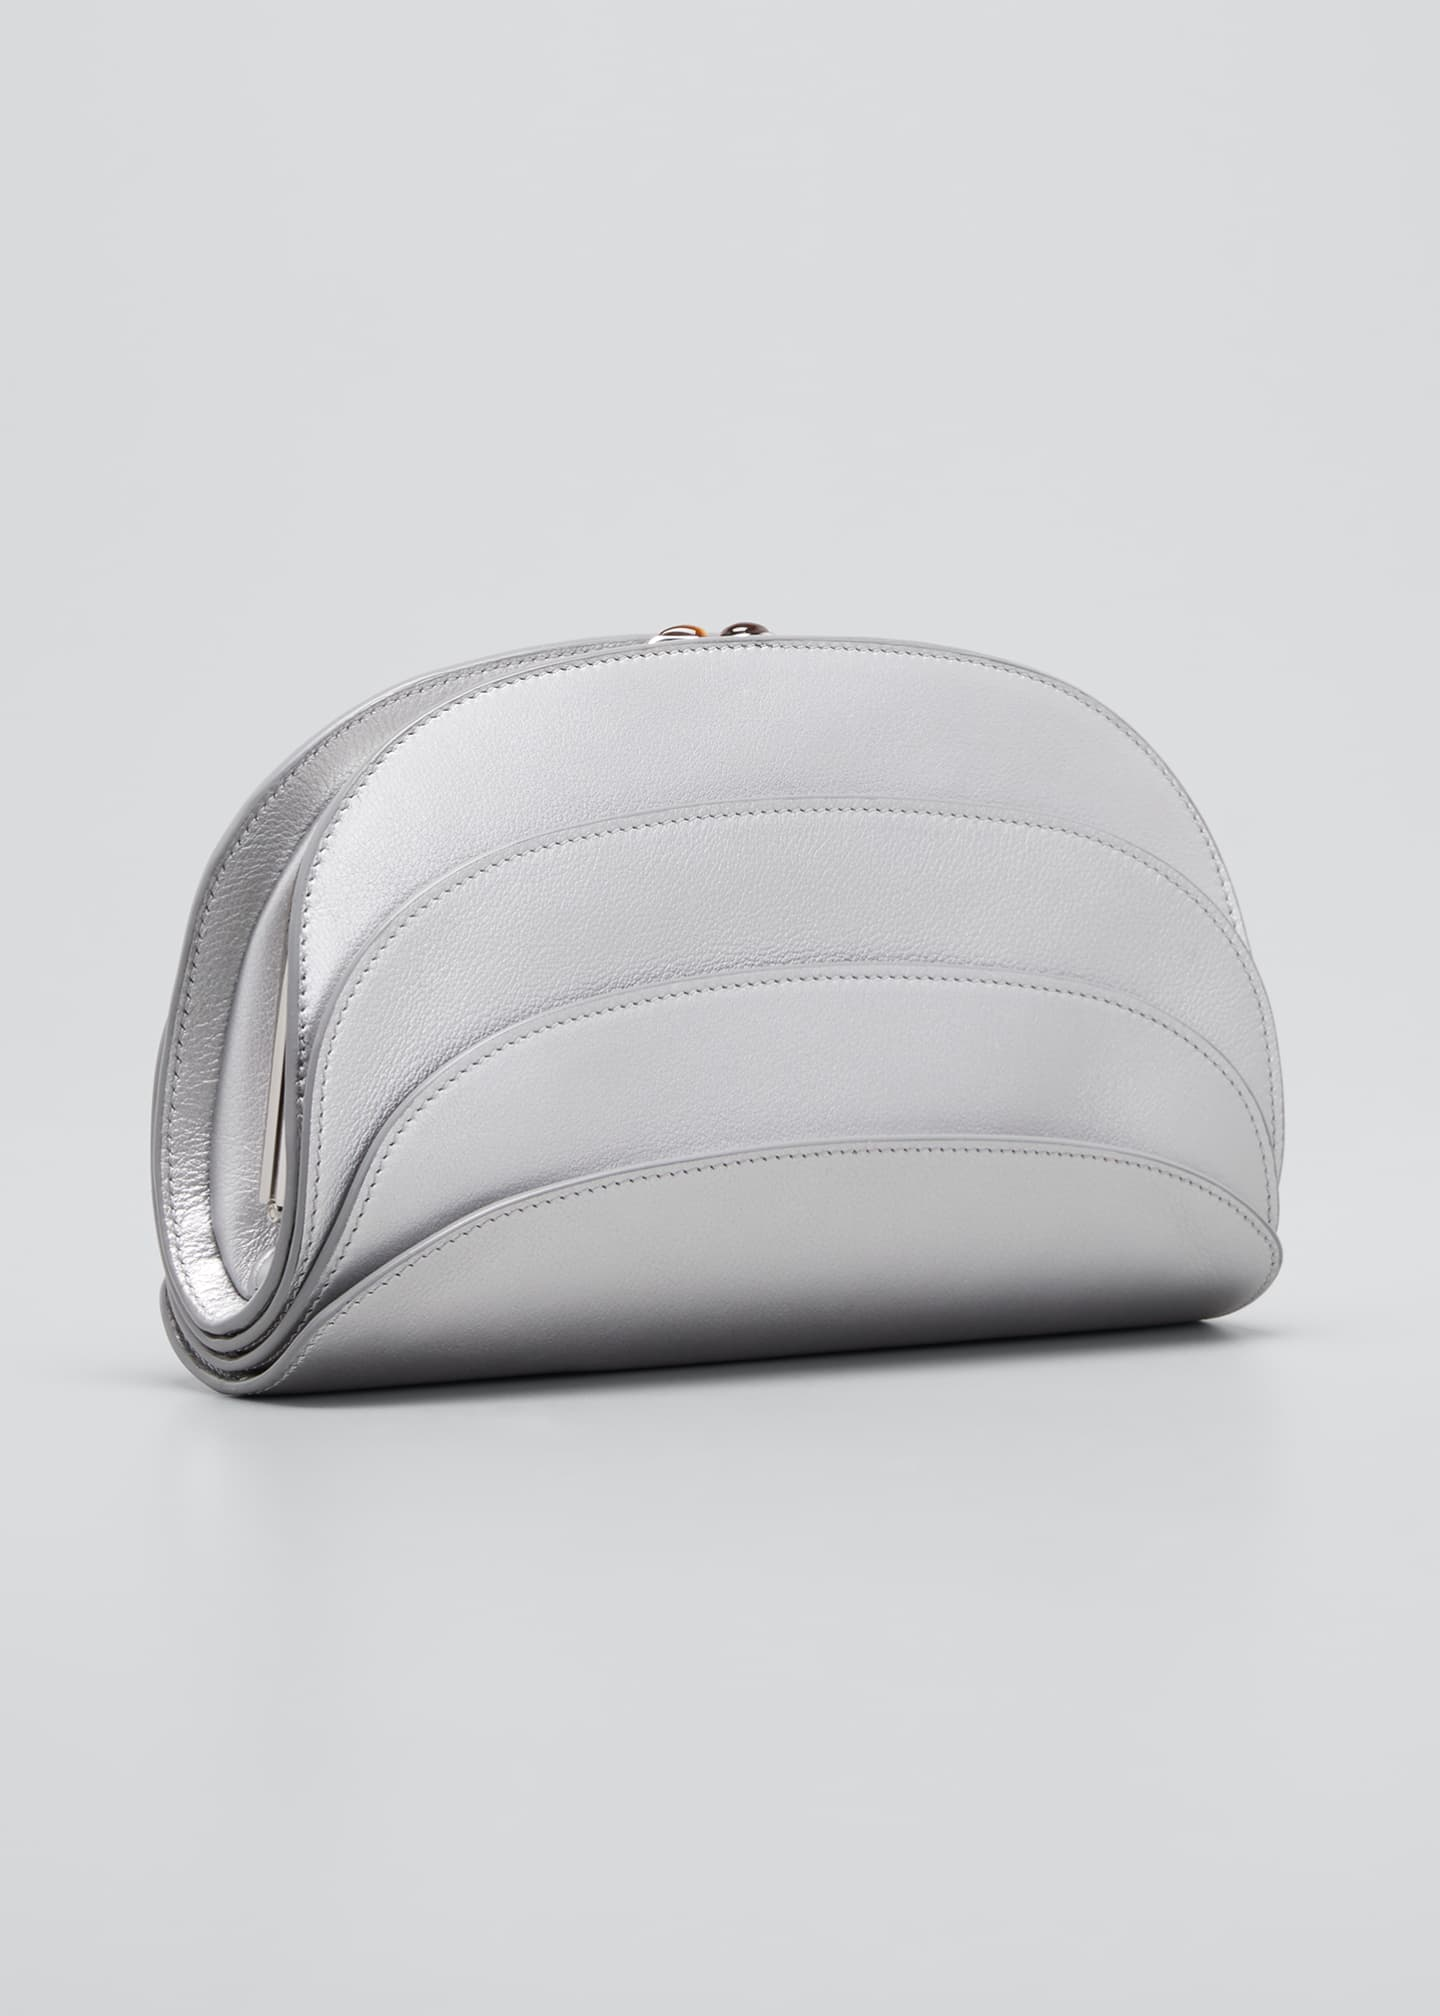 Image 3 of 5: Millefoglie C Leather Clutch Bag